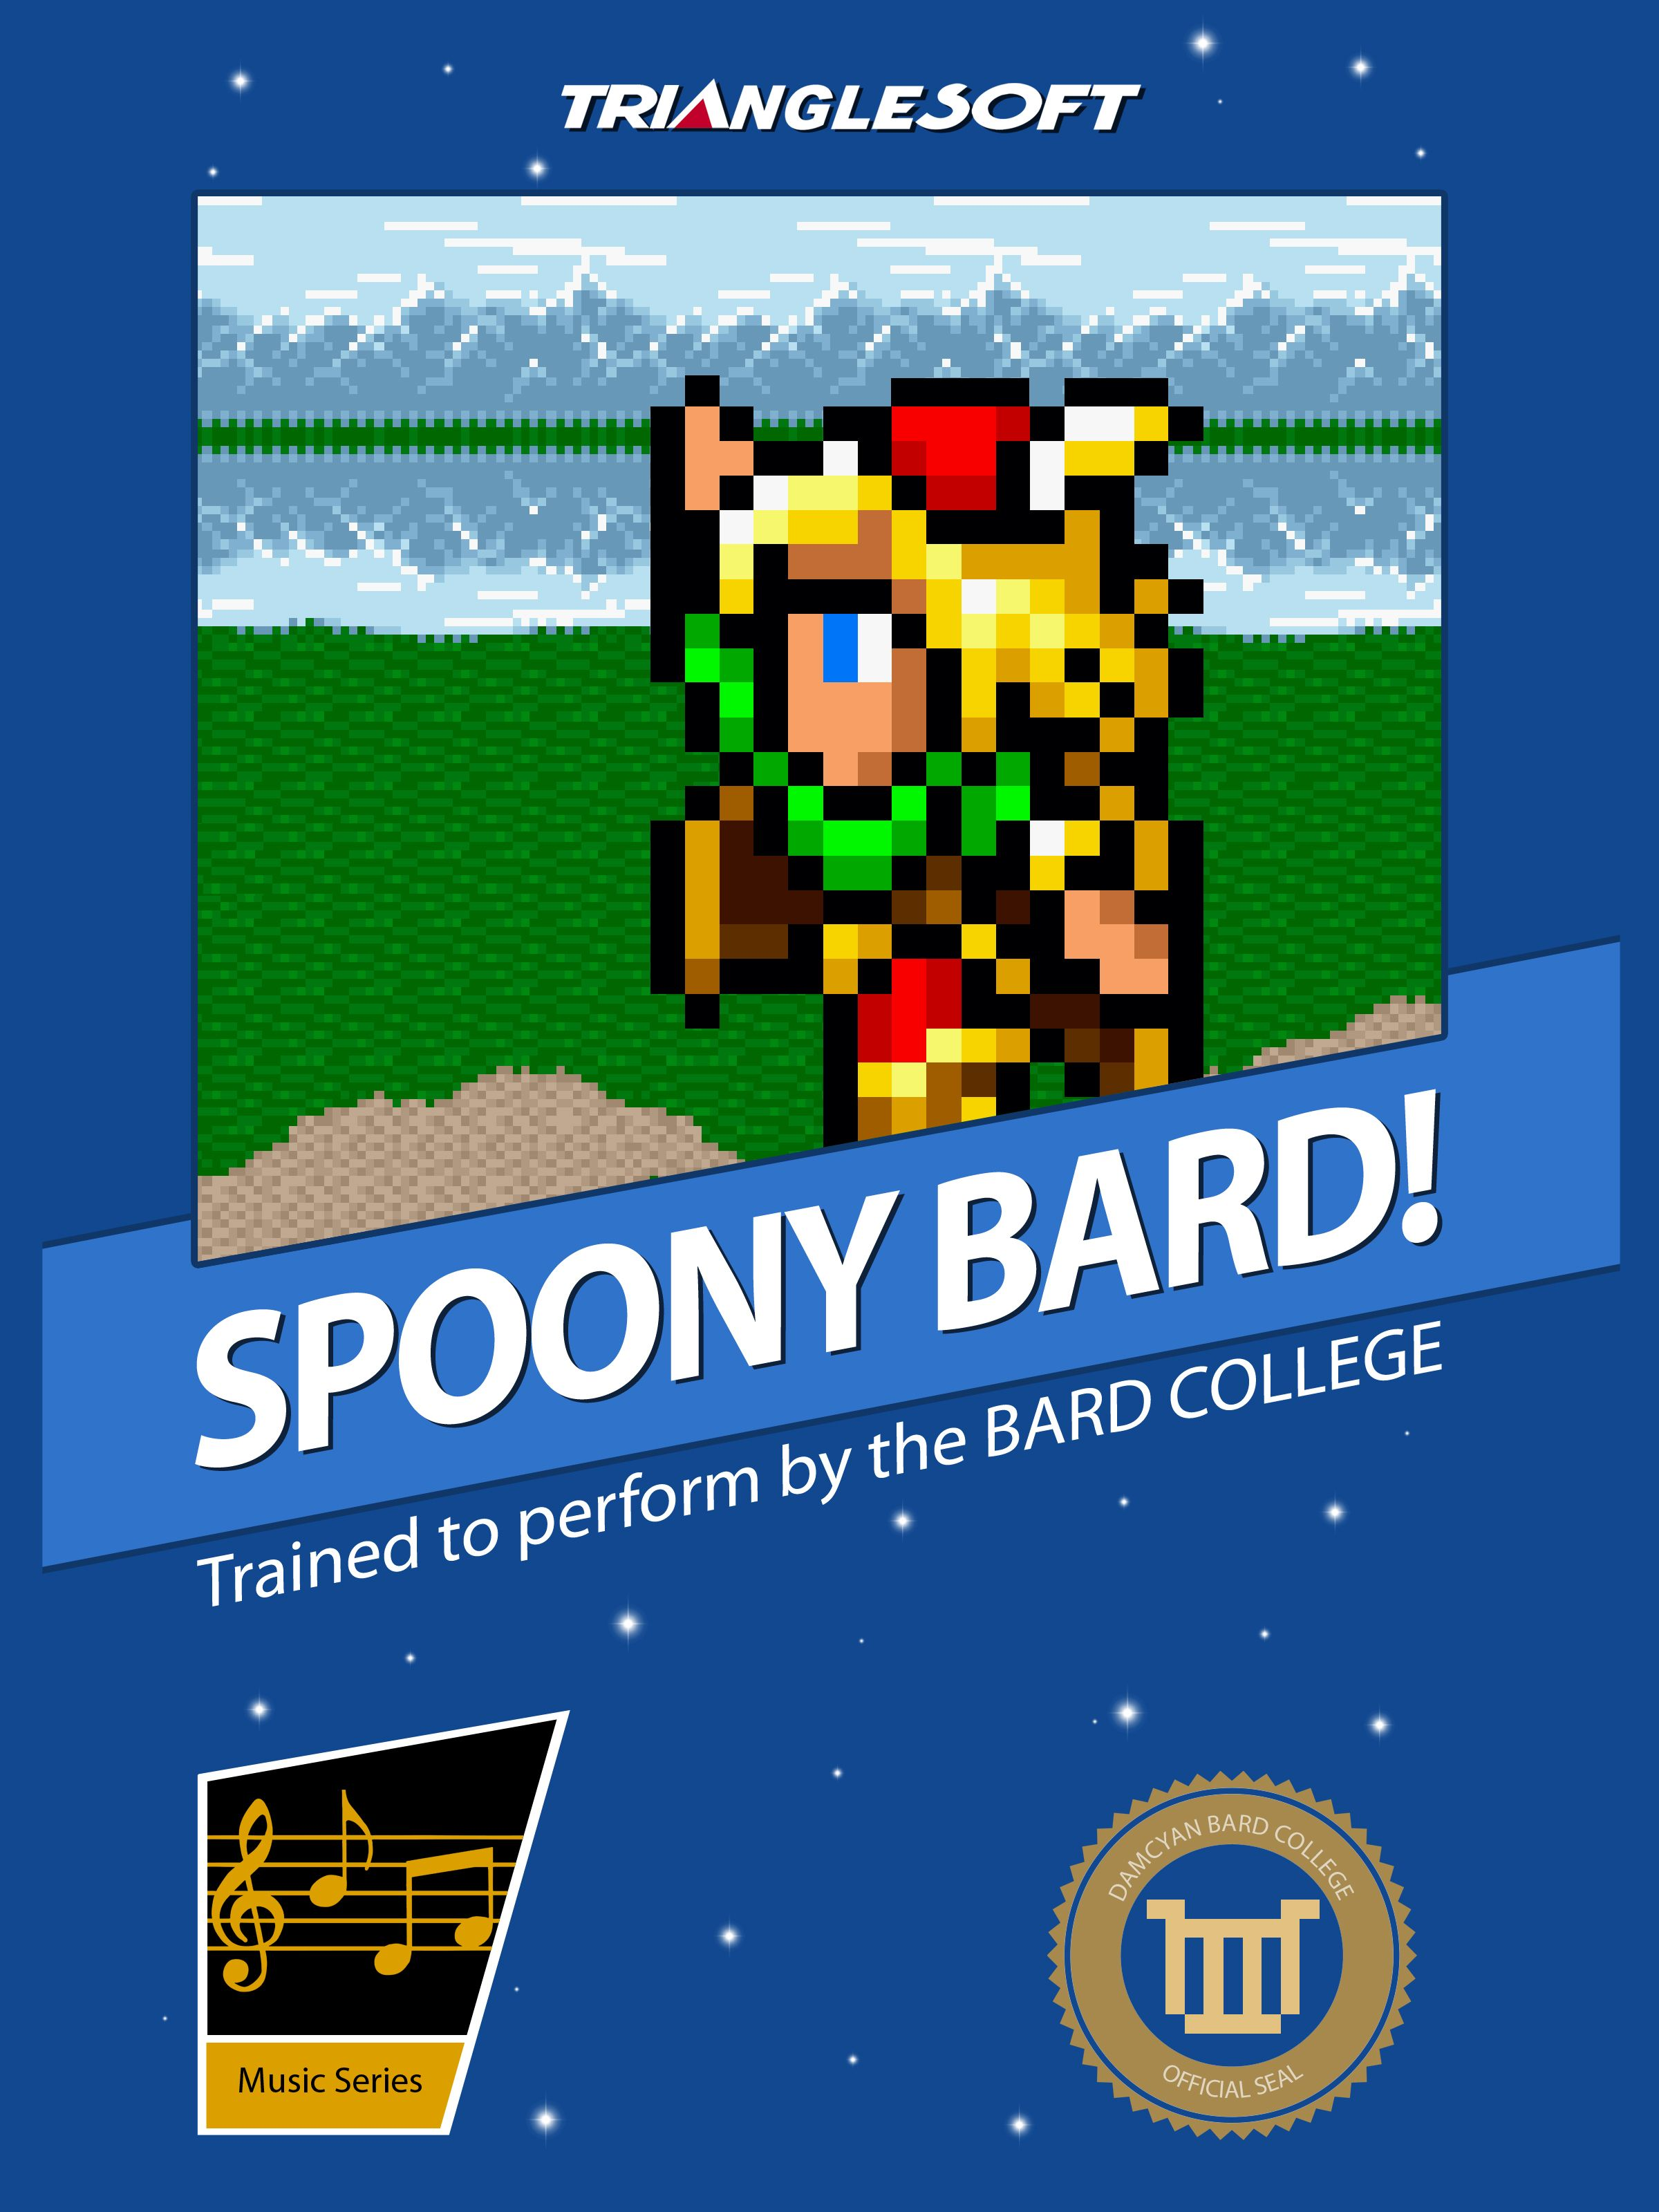 Spoony Bard Final Fantasy T Shirt By Thehookshot Final Fantasy